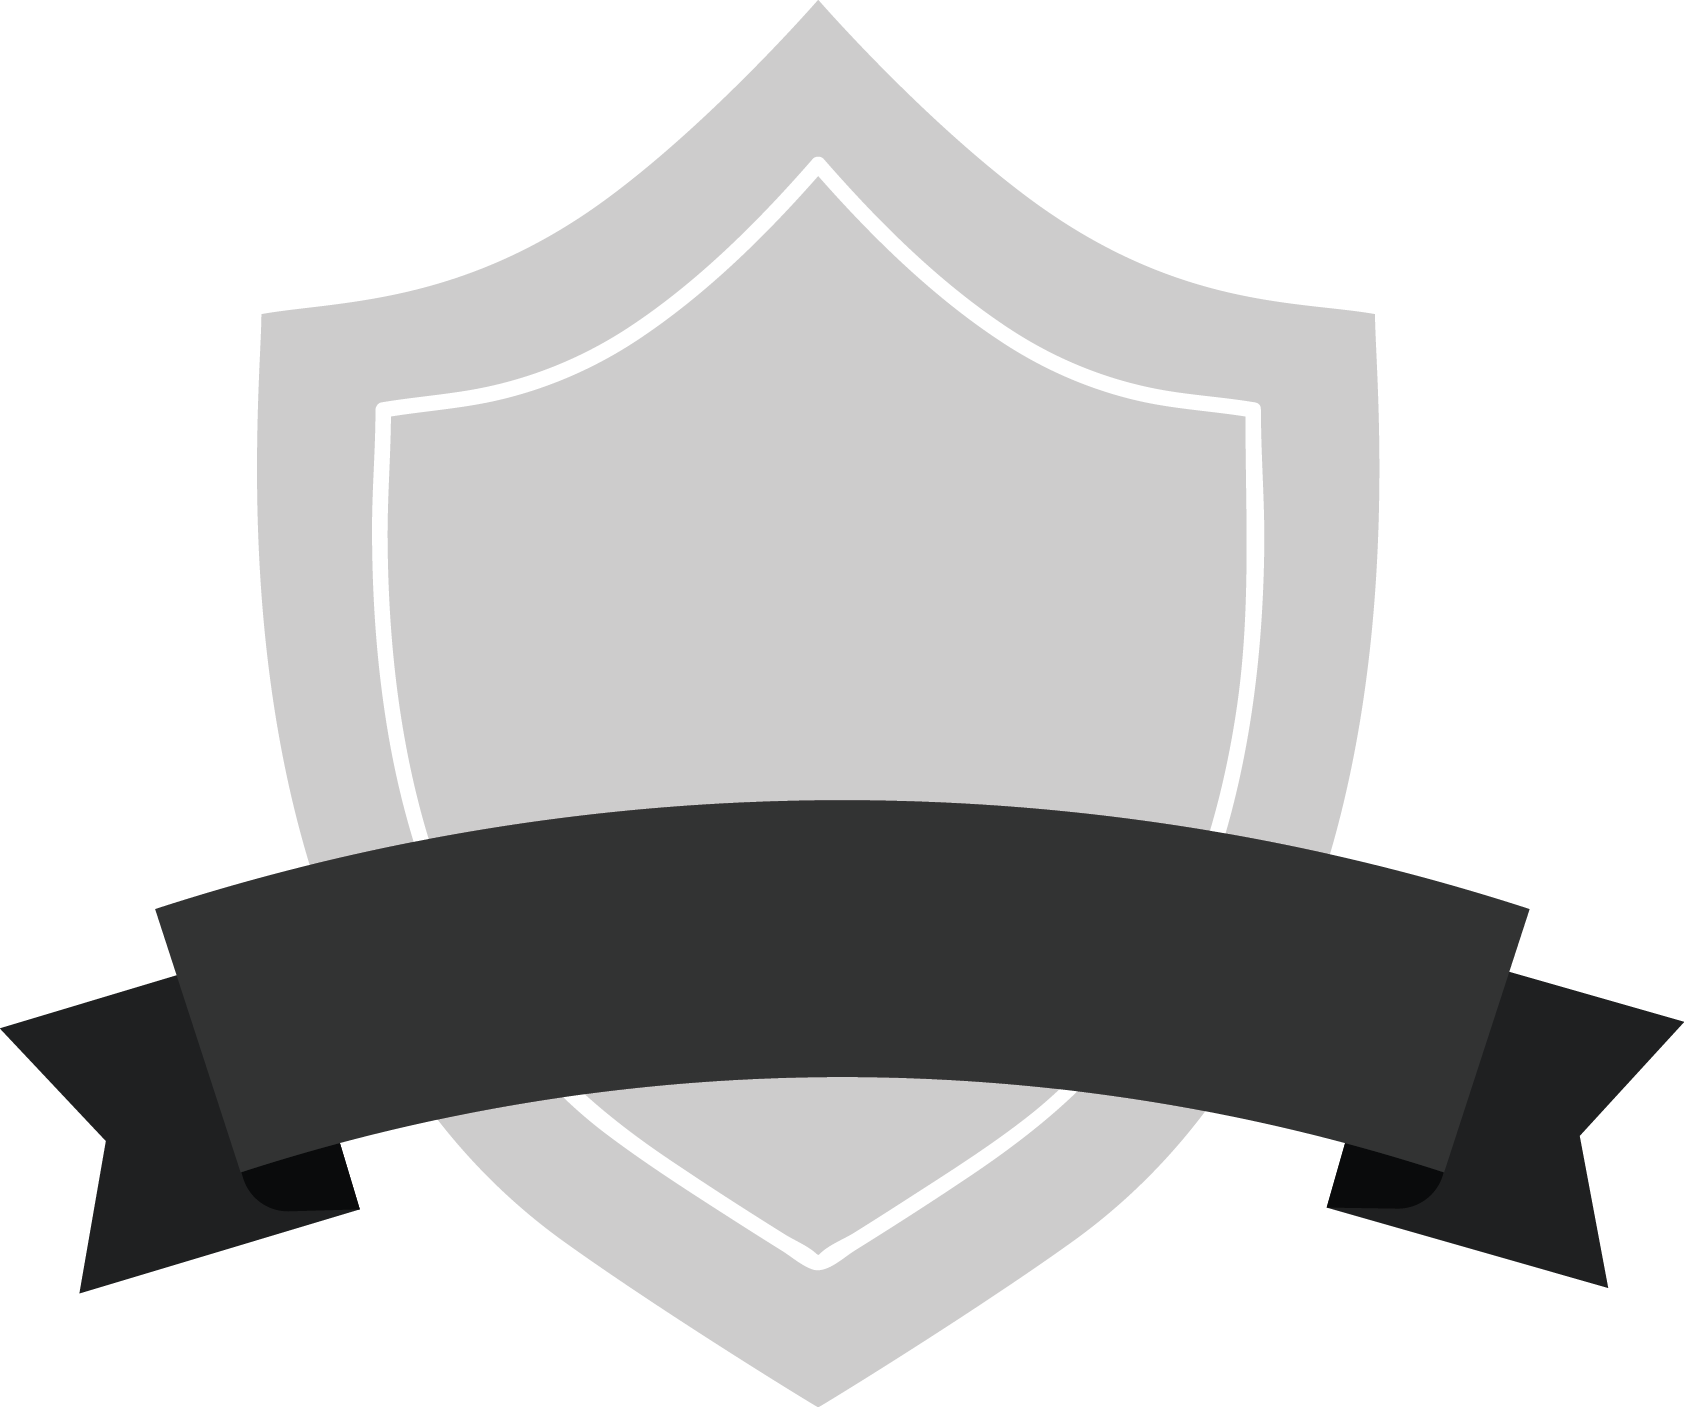 Gray Shield Badge With Black Ribbon Ribbon Banner Red Png Clipart Full Size Clipart 4885392 Pinclipart